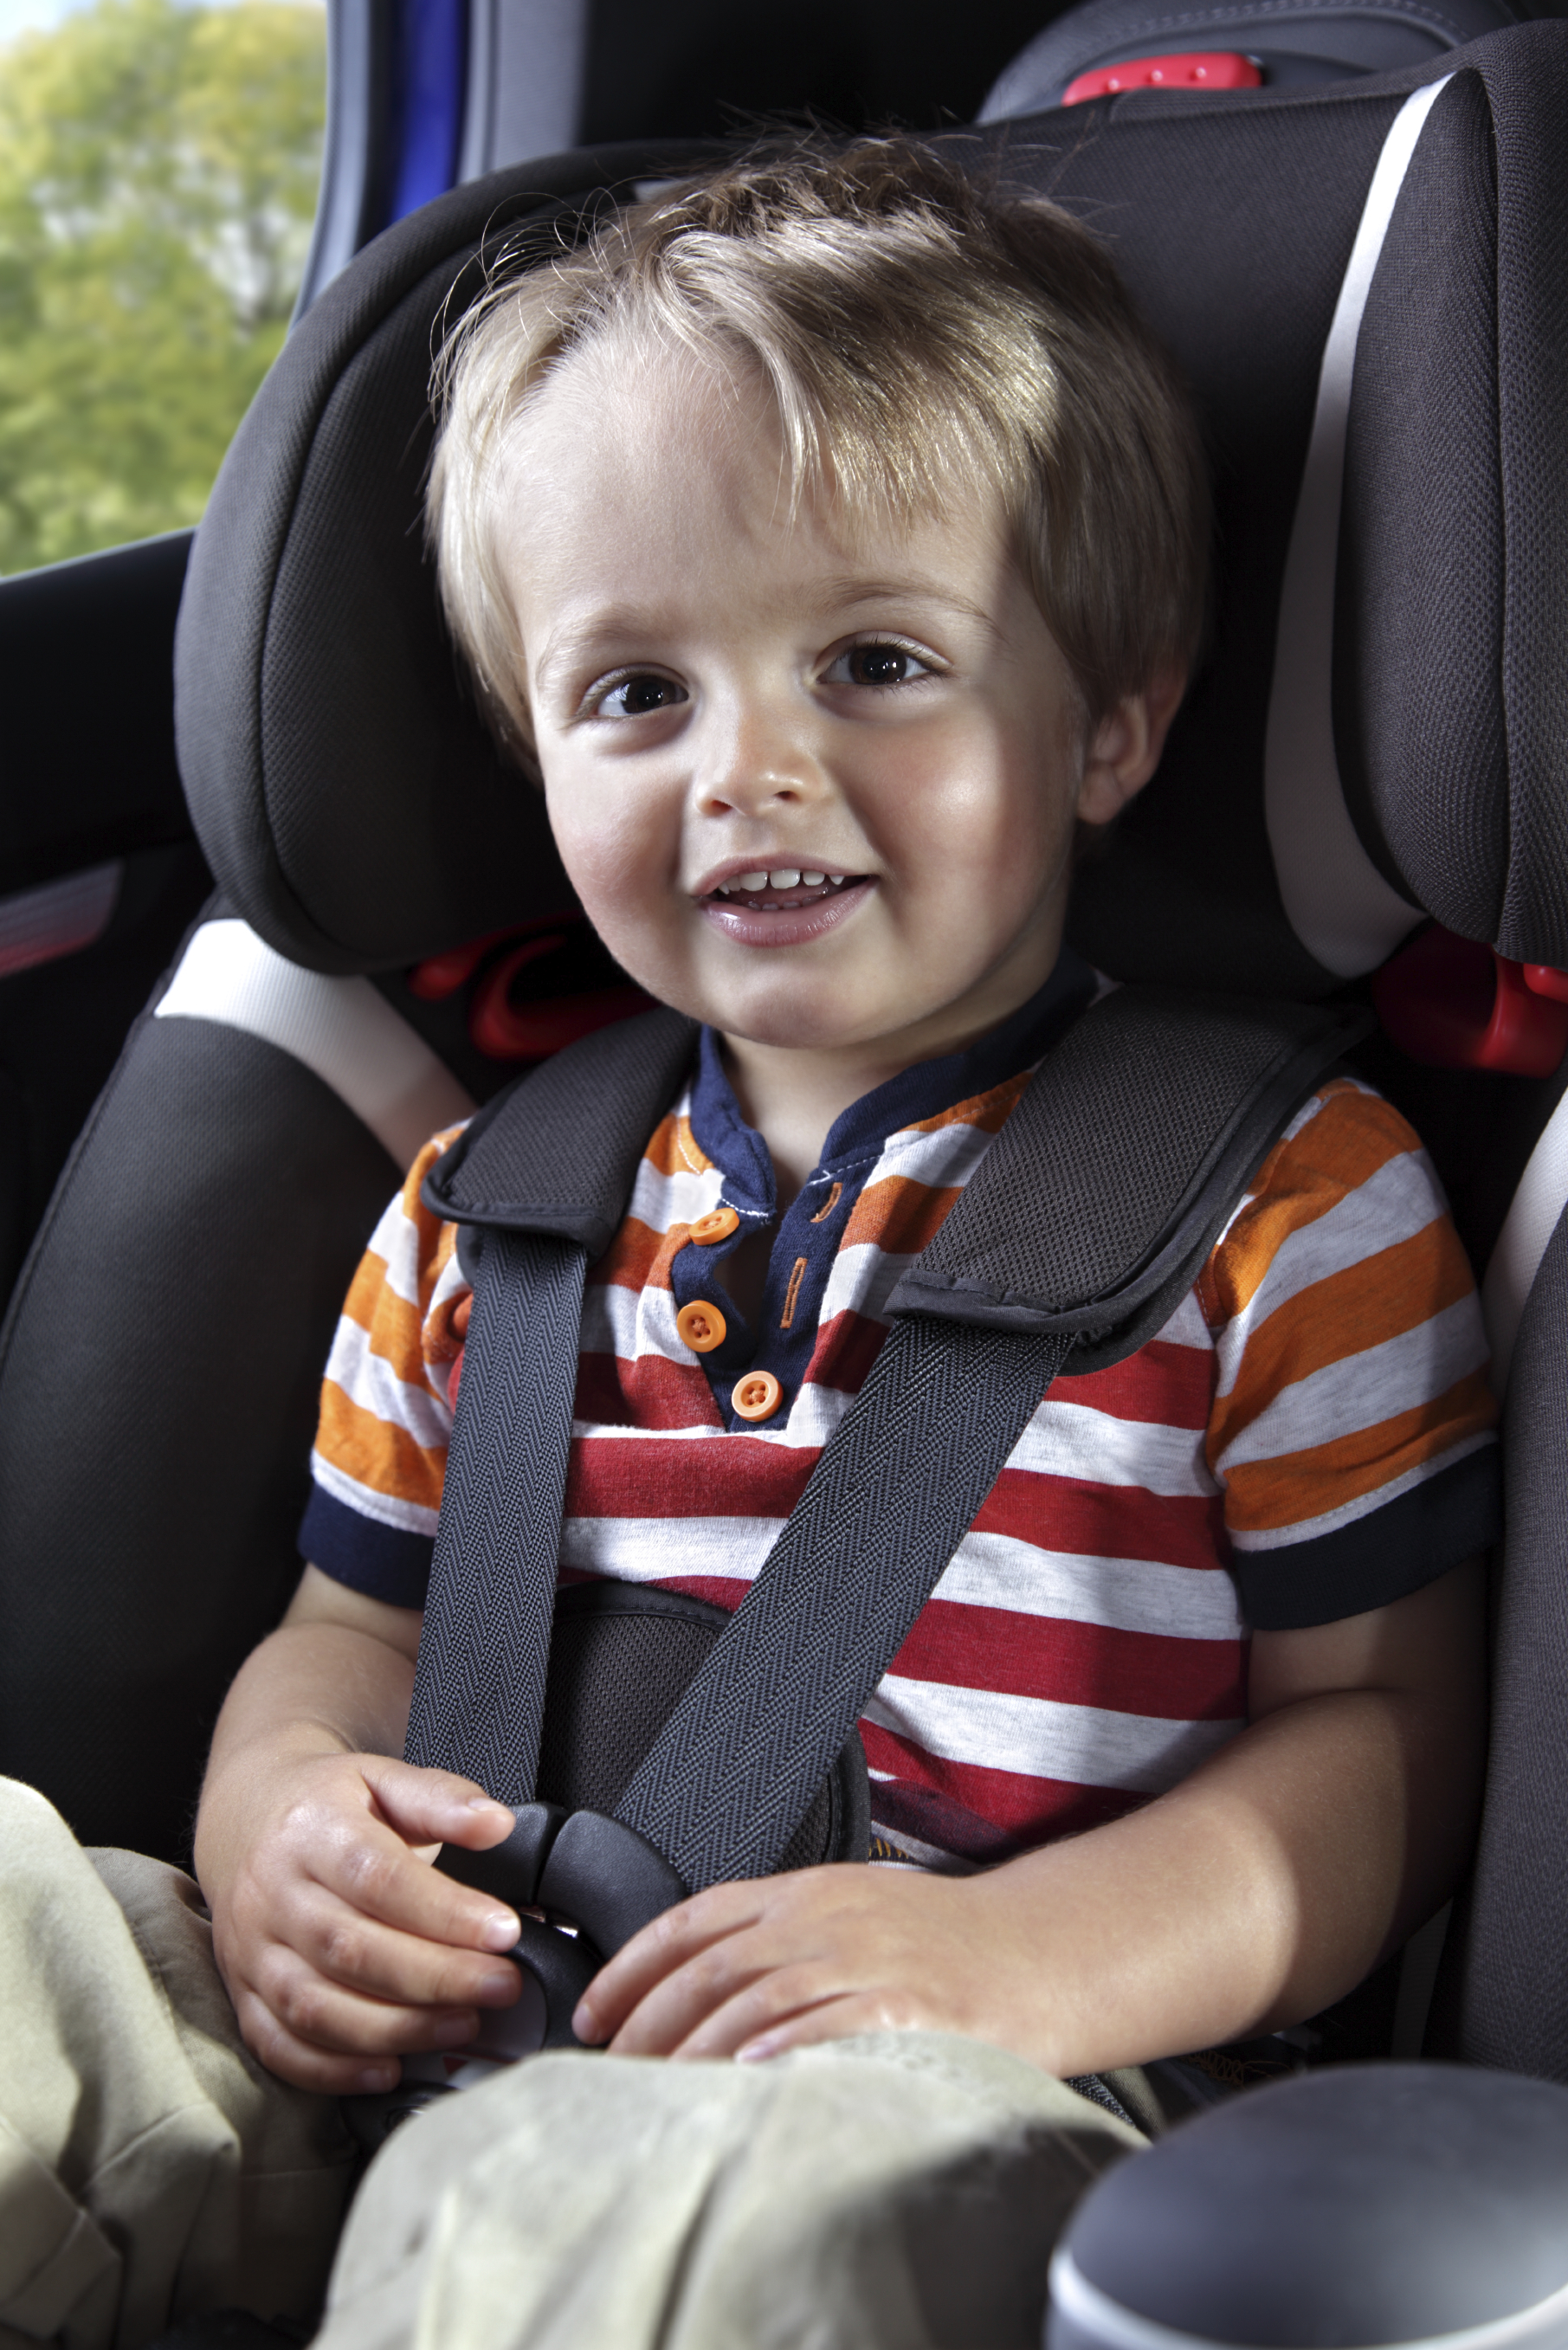 My Son In His Car Seat